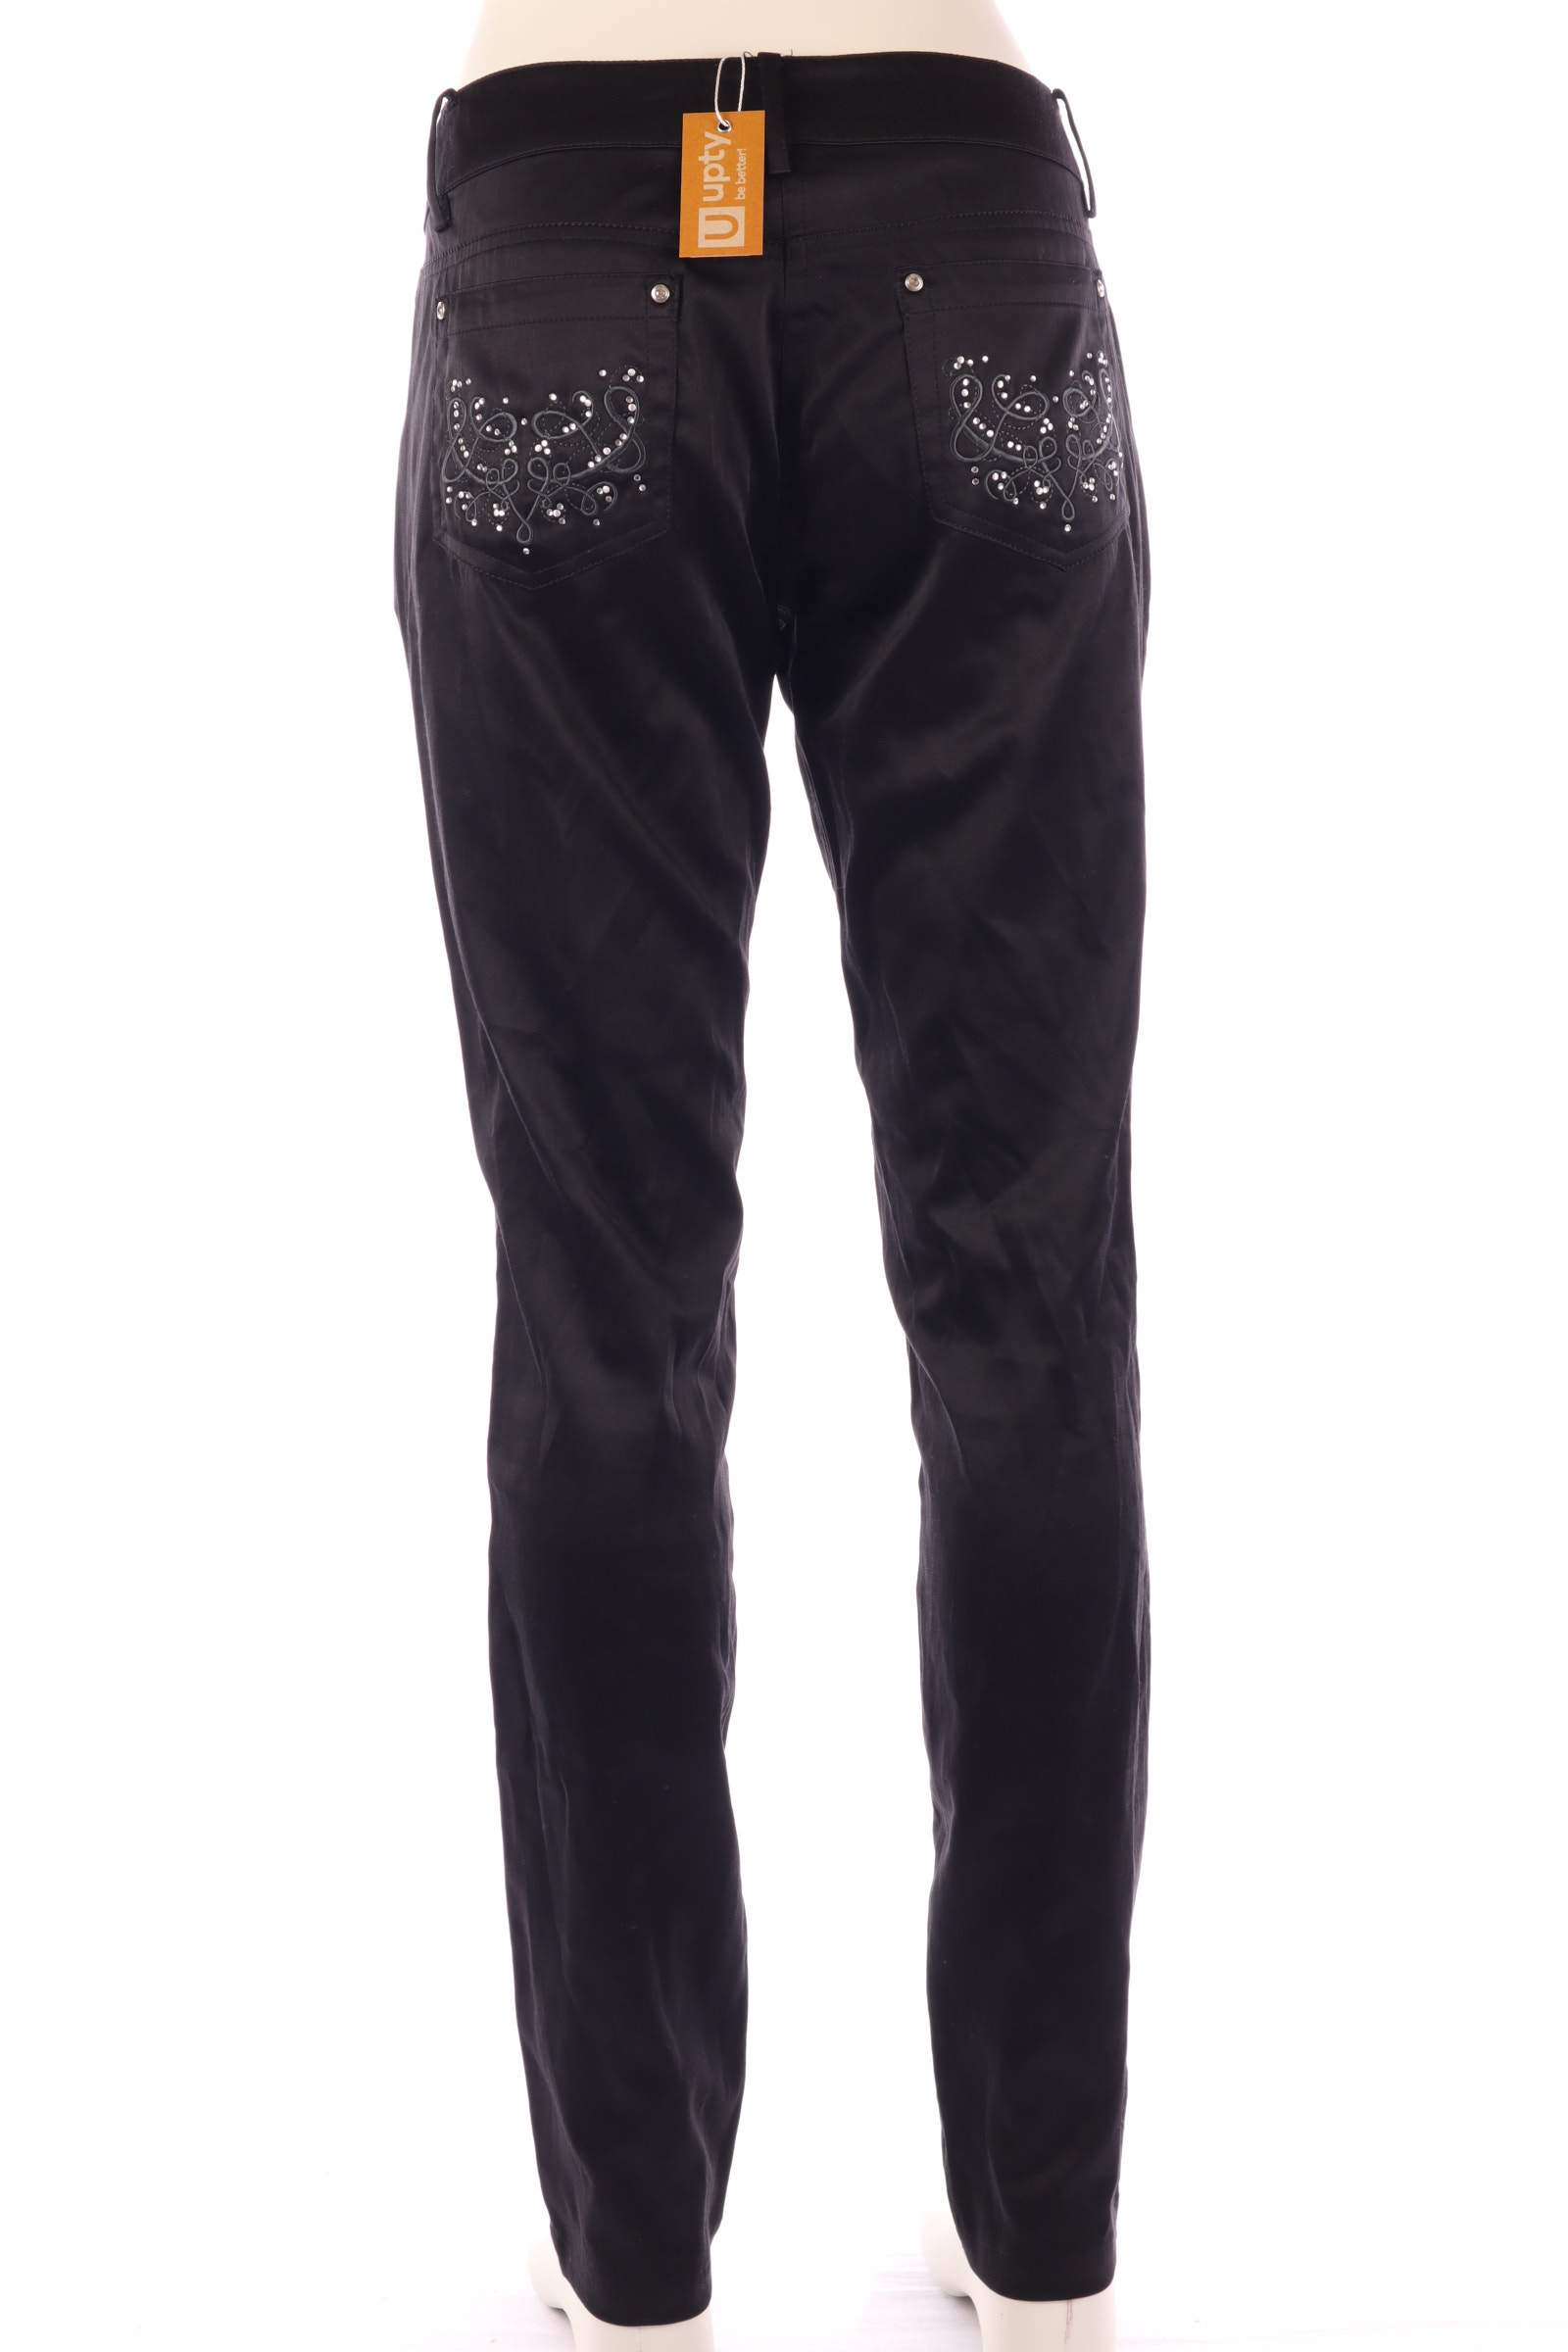 Tally Weijl Black Pants - upty.store